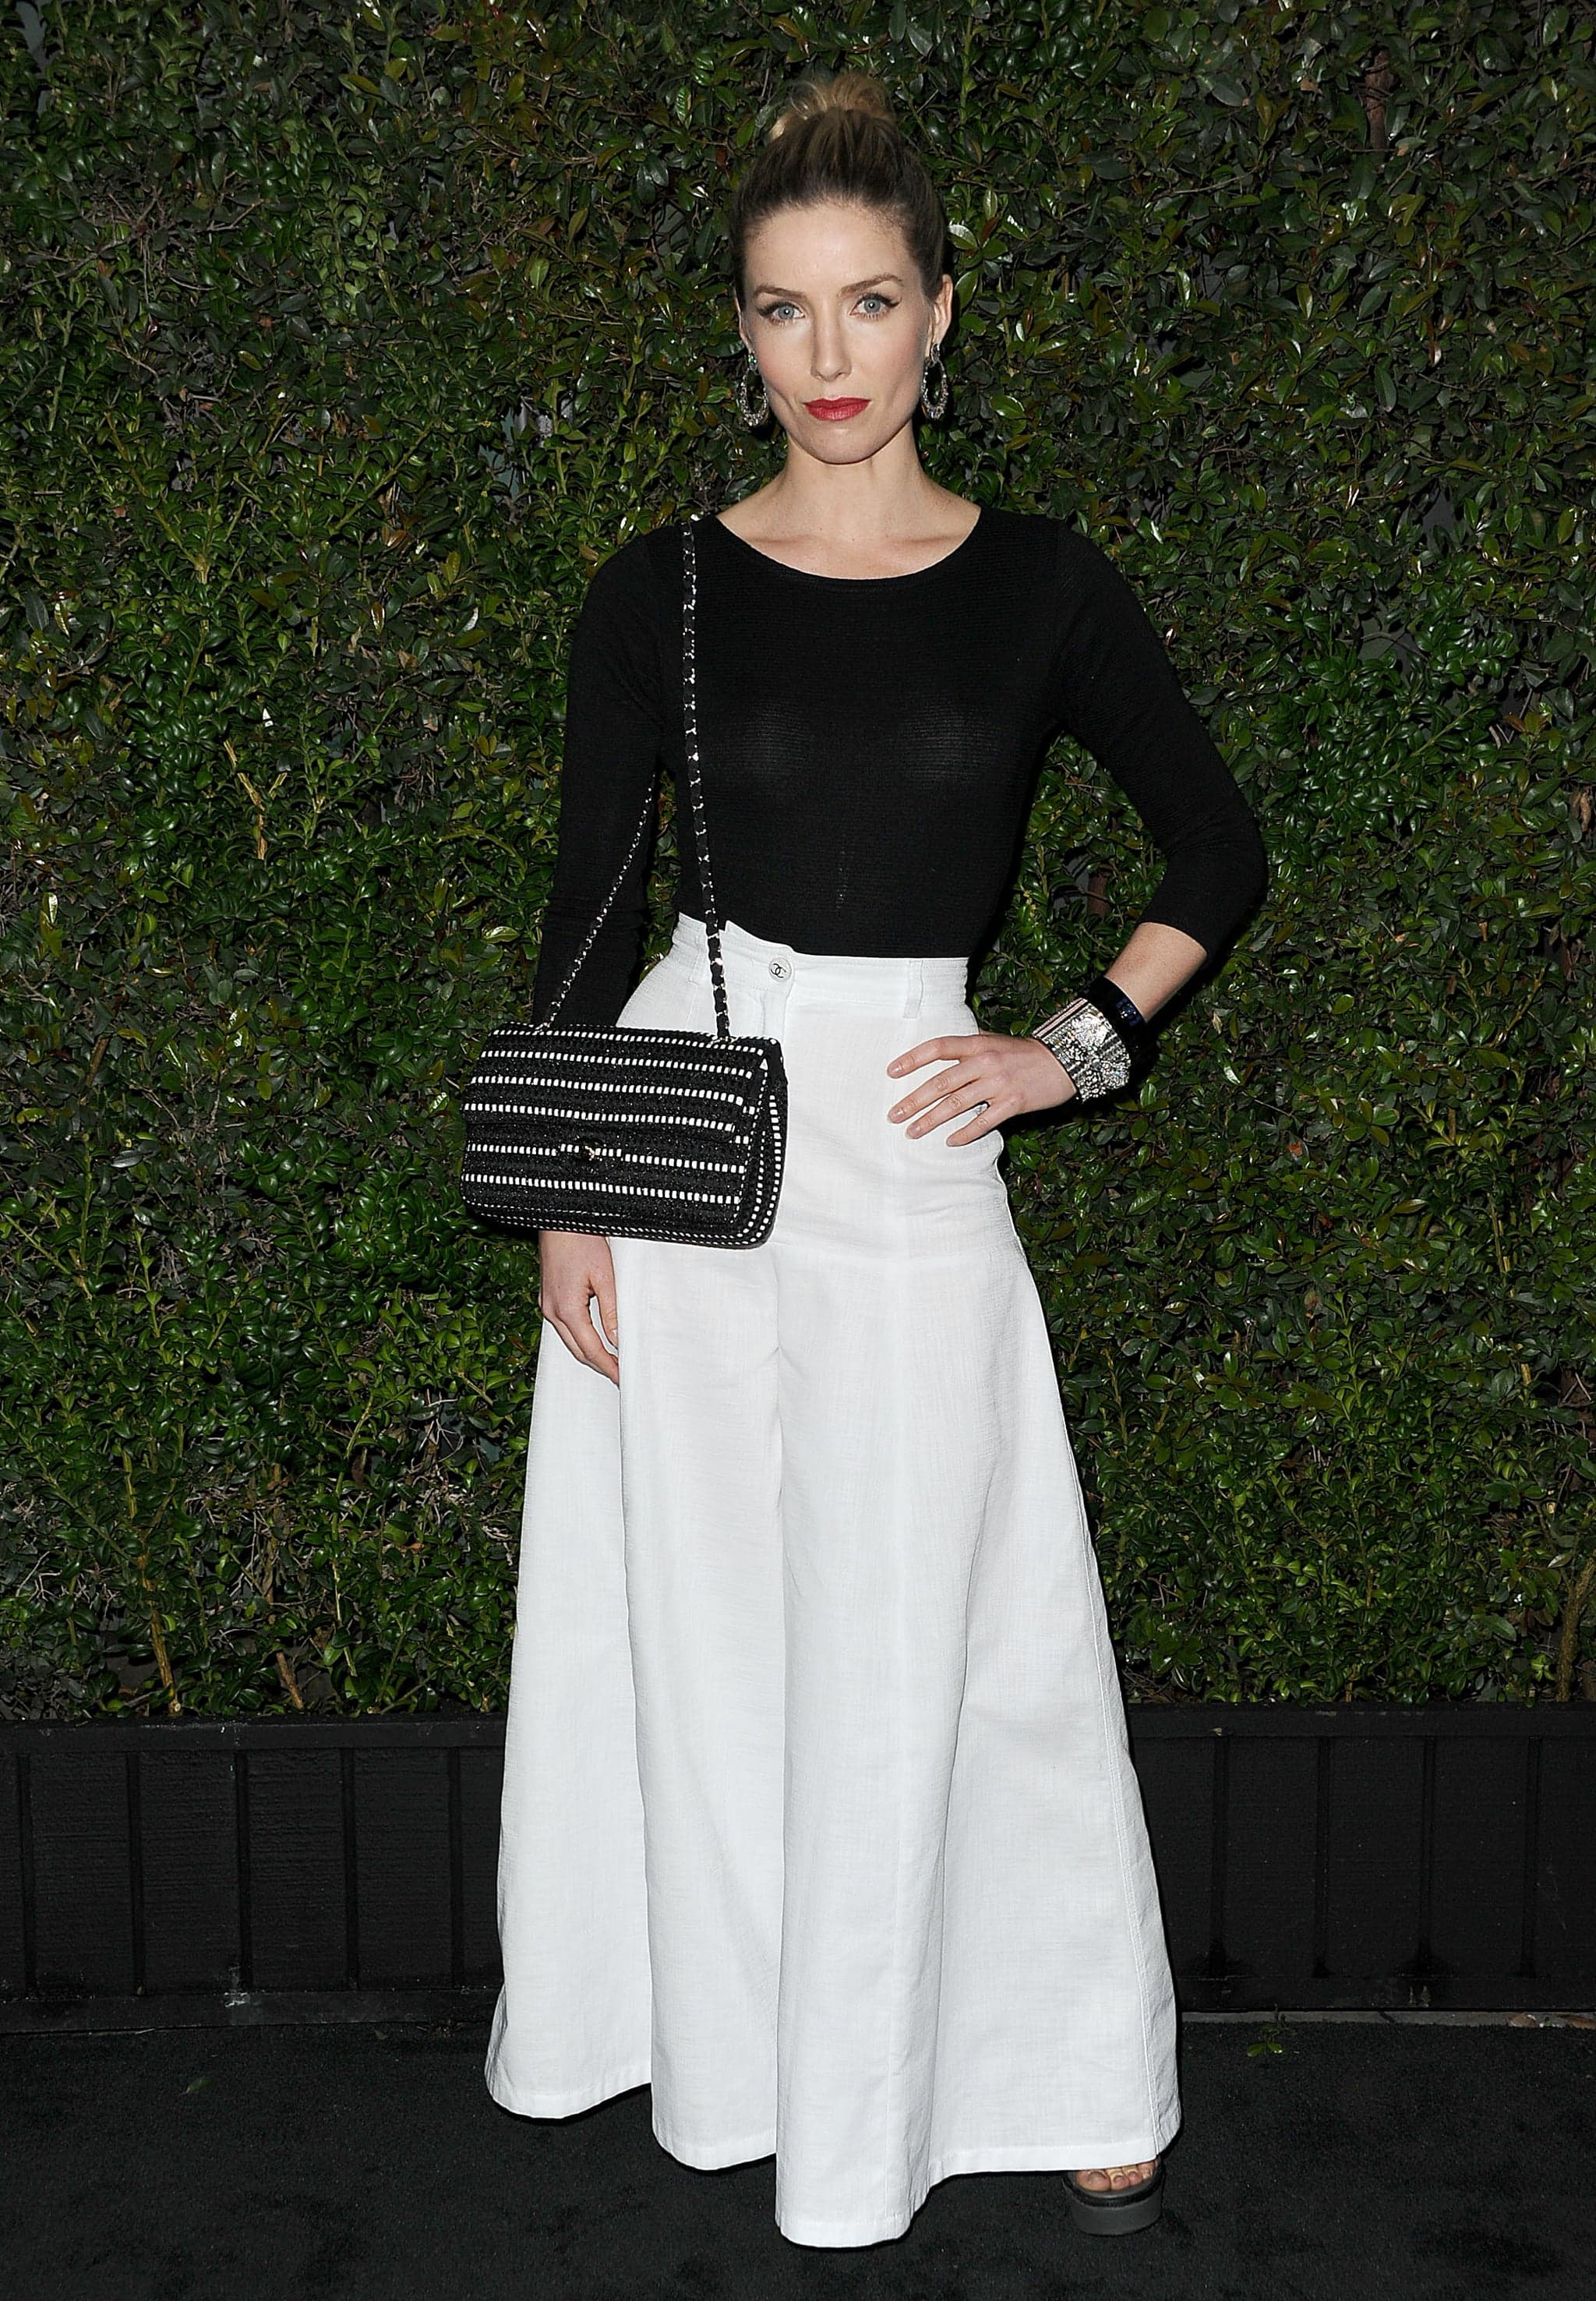 full-skirt-simple-top-allowed-all-eyes-Chanel-bag